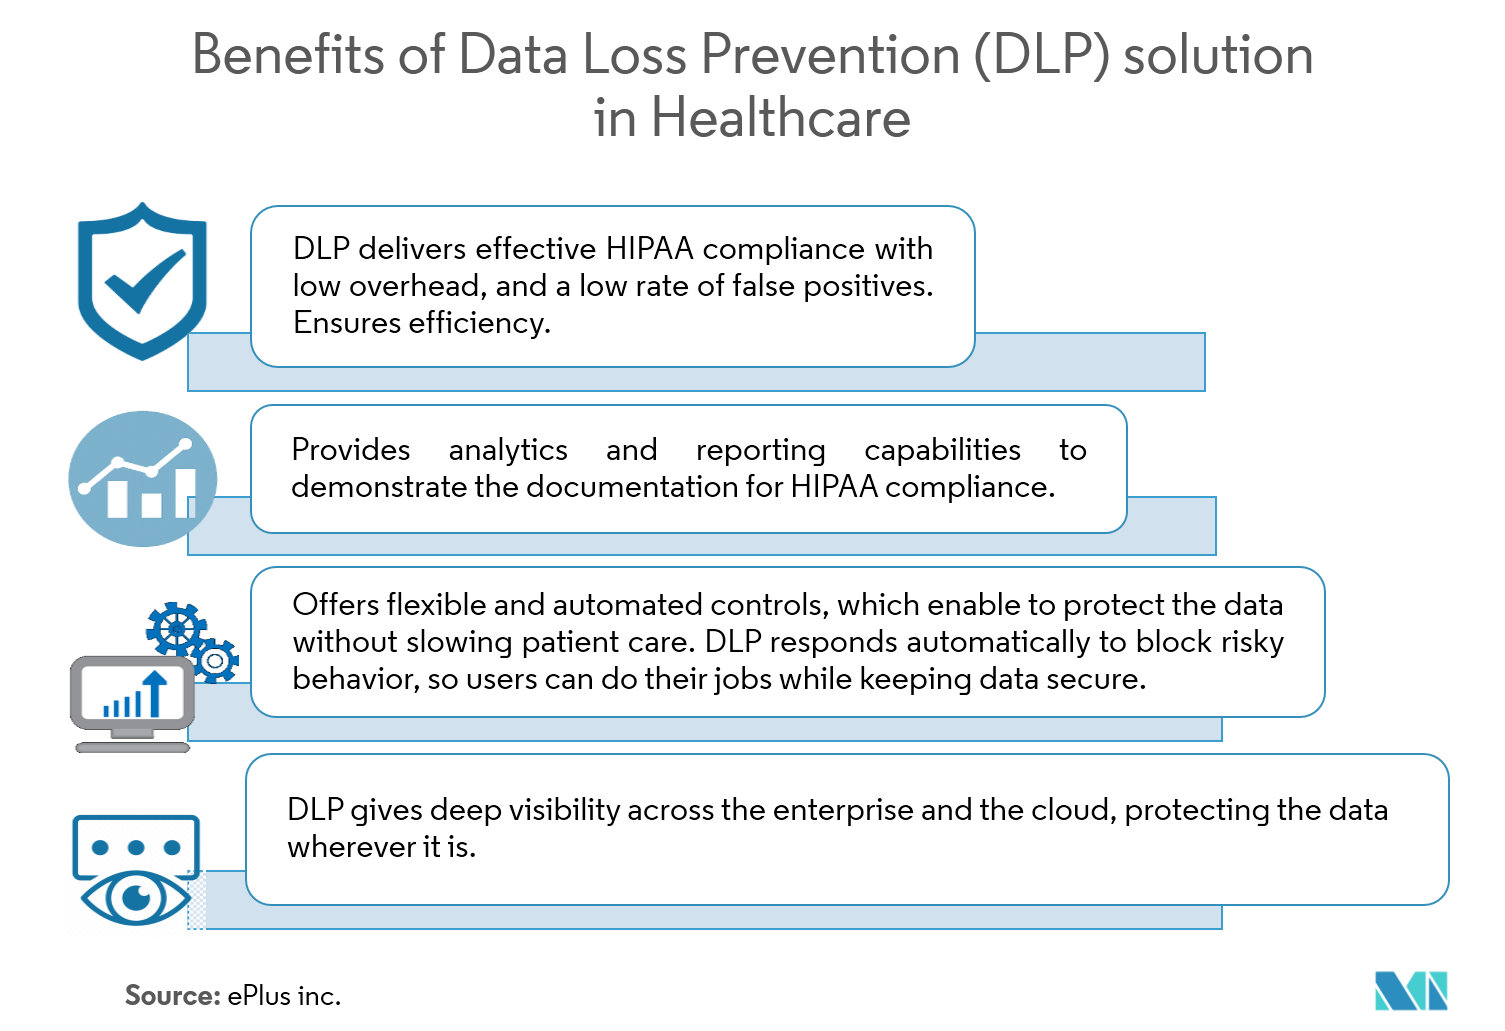 BEnefits of DLP solution in Healthcare